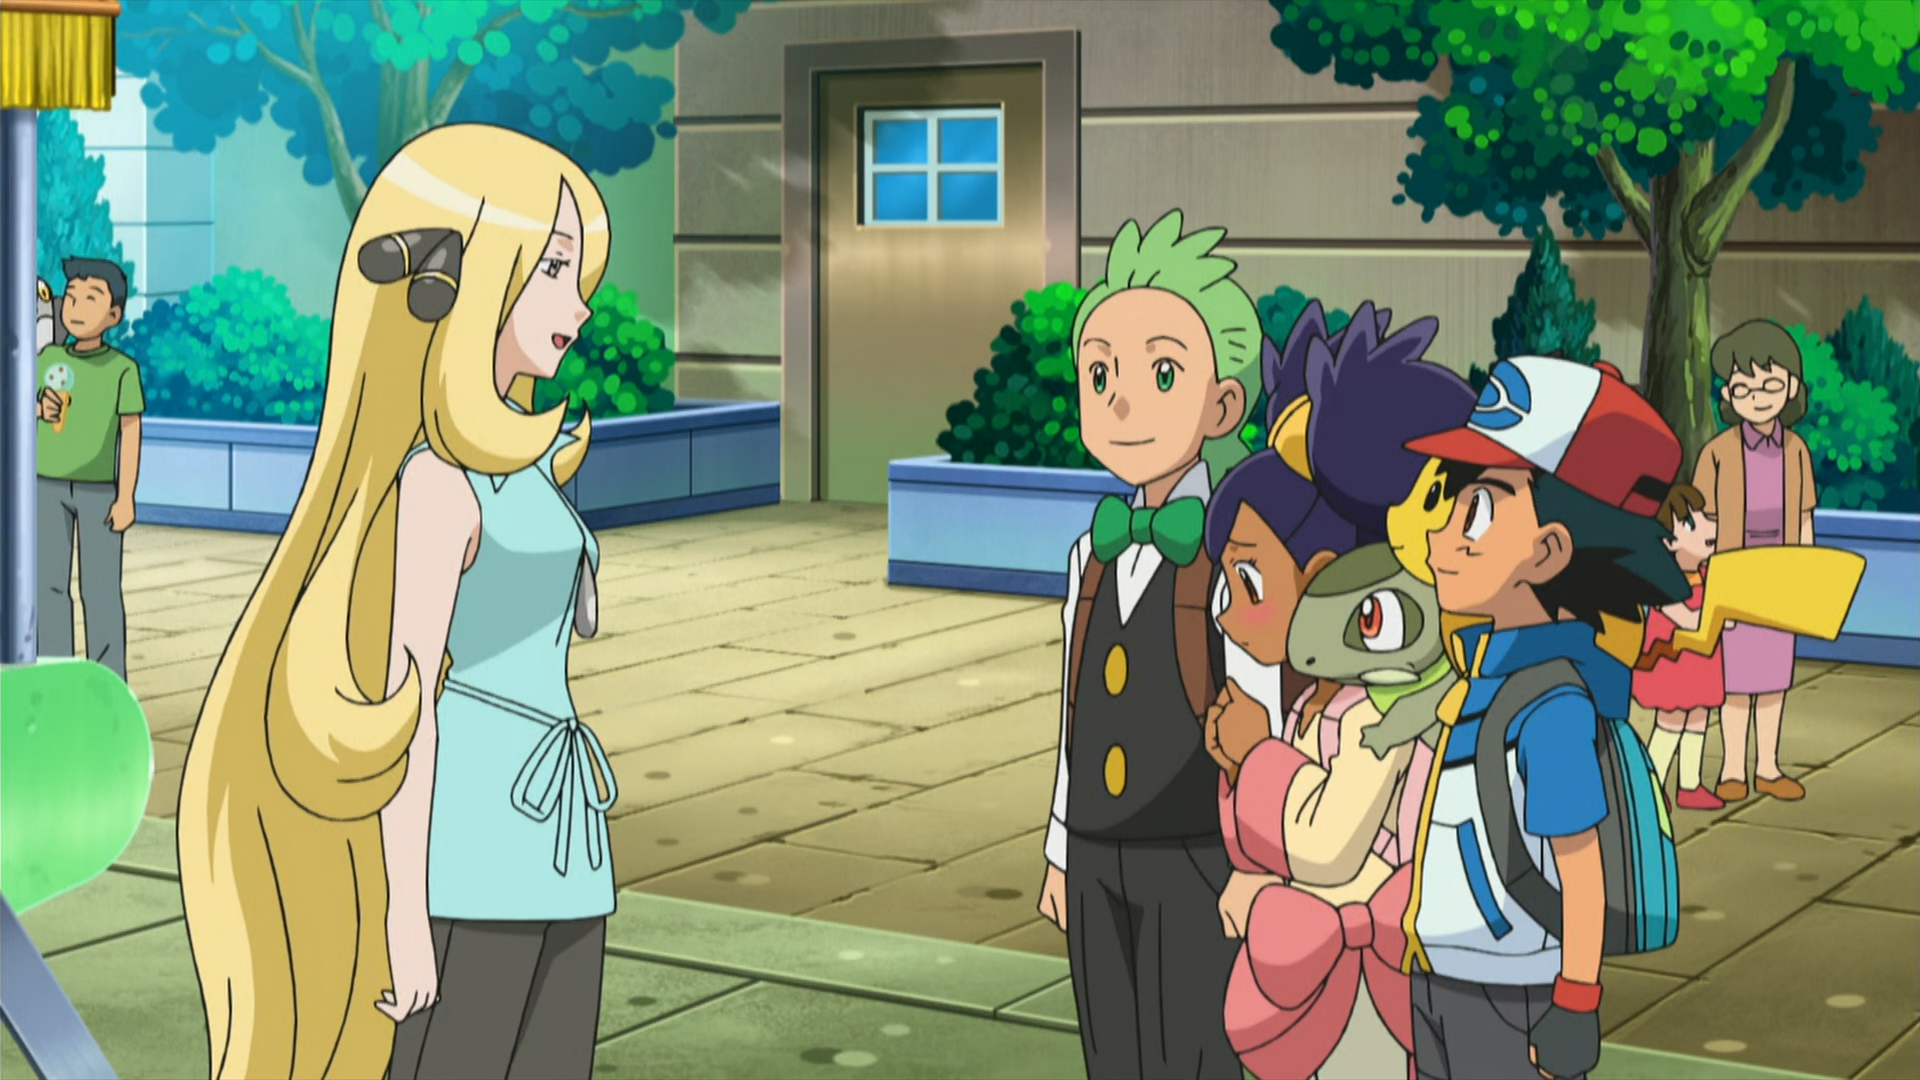 File:Cynthia with Ash, Iris and Cilan.png